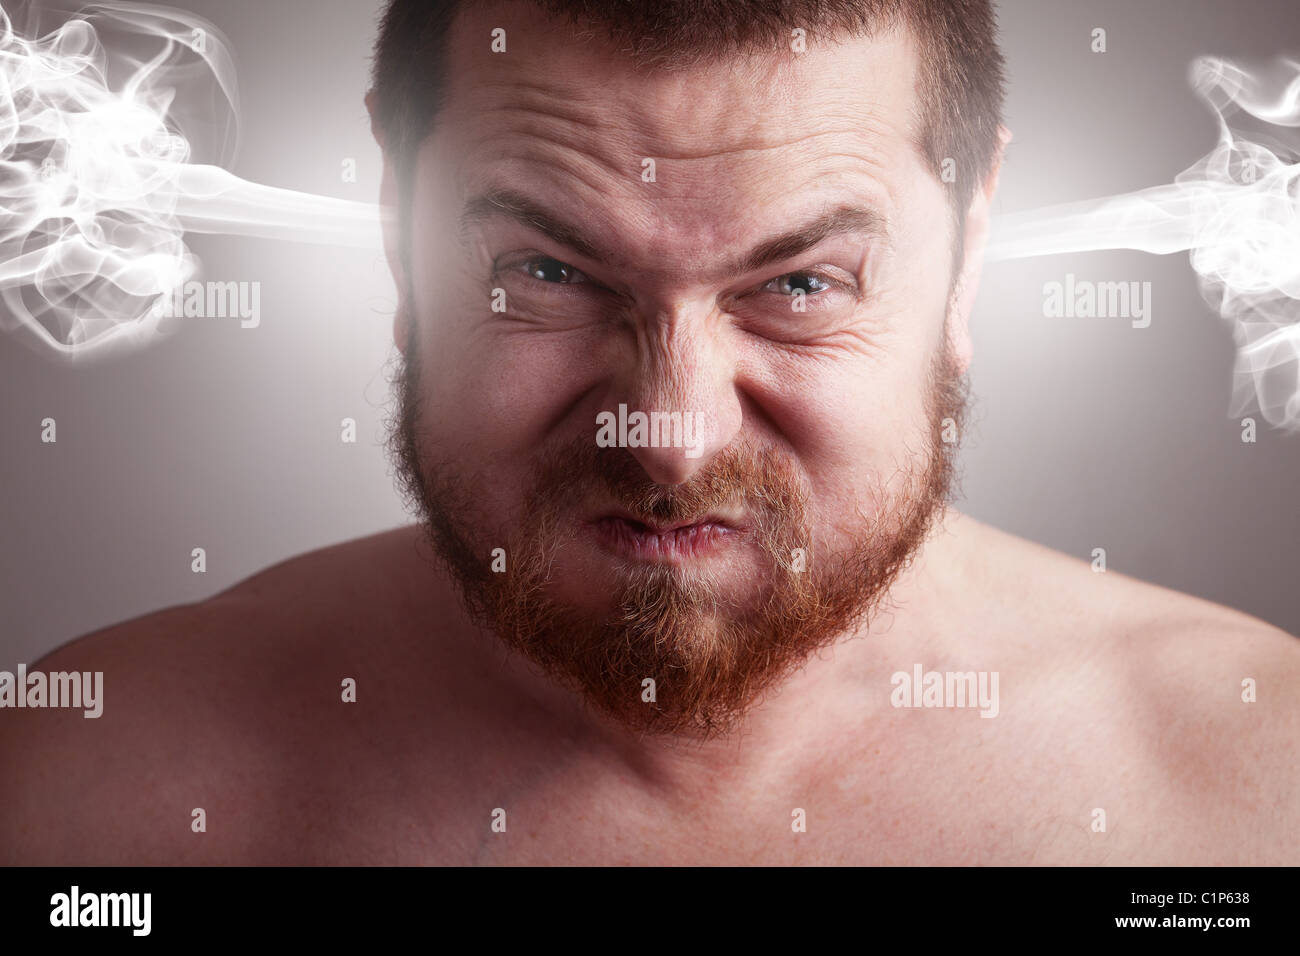 Angry frustrated man with funny stress face expression - Stock Image